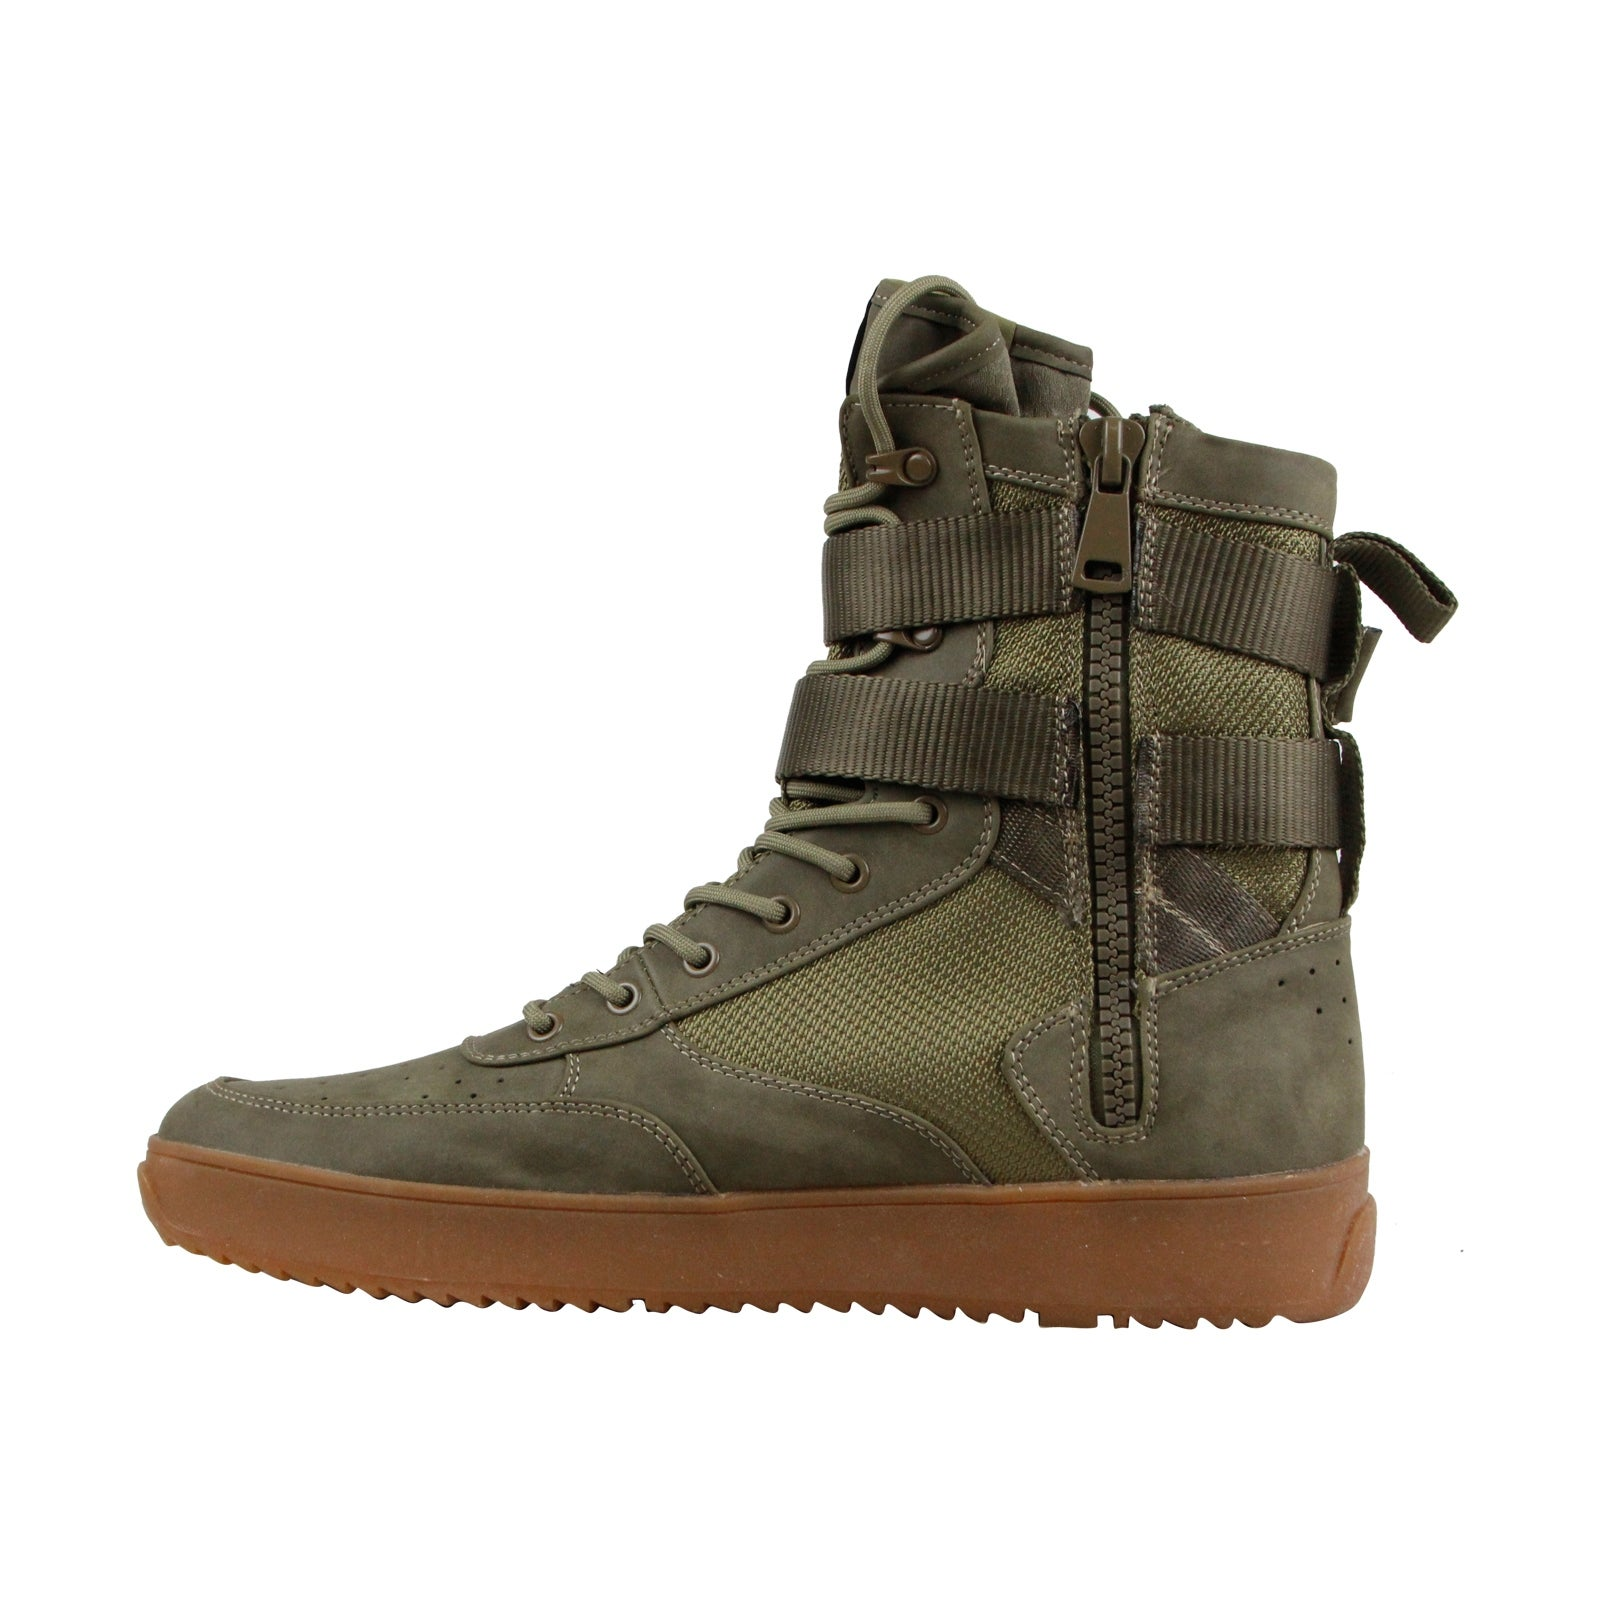 243c2a75290 Shop Steve Madden Zeroday Mens Green Leather High Top Lace Up Sneakers  Shoes - Free Shipping Today - Overstock - 22130514